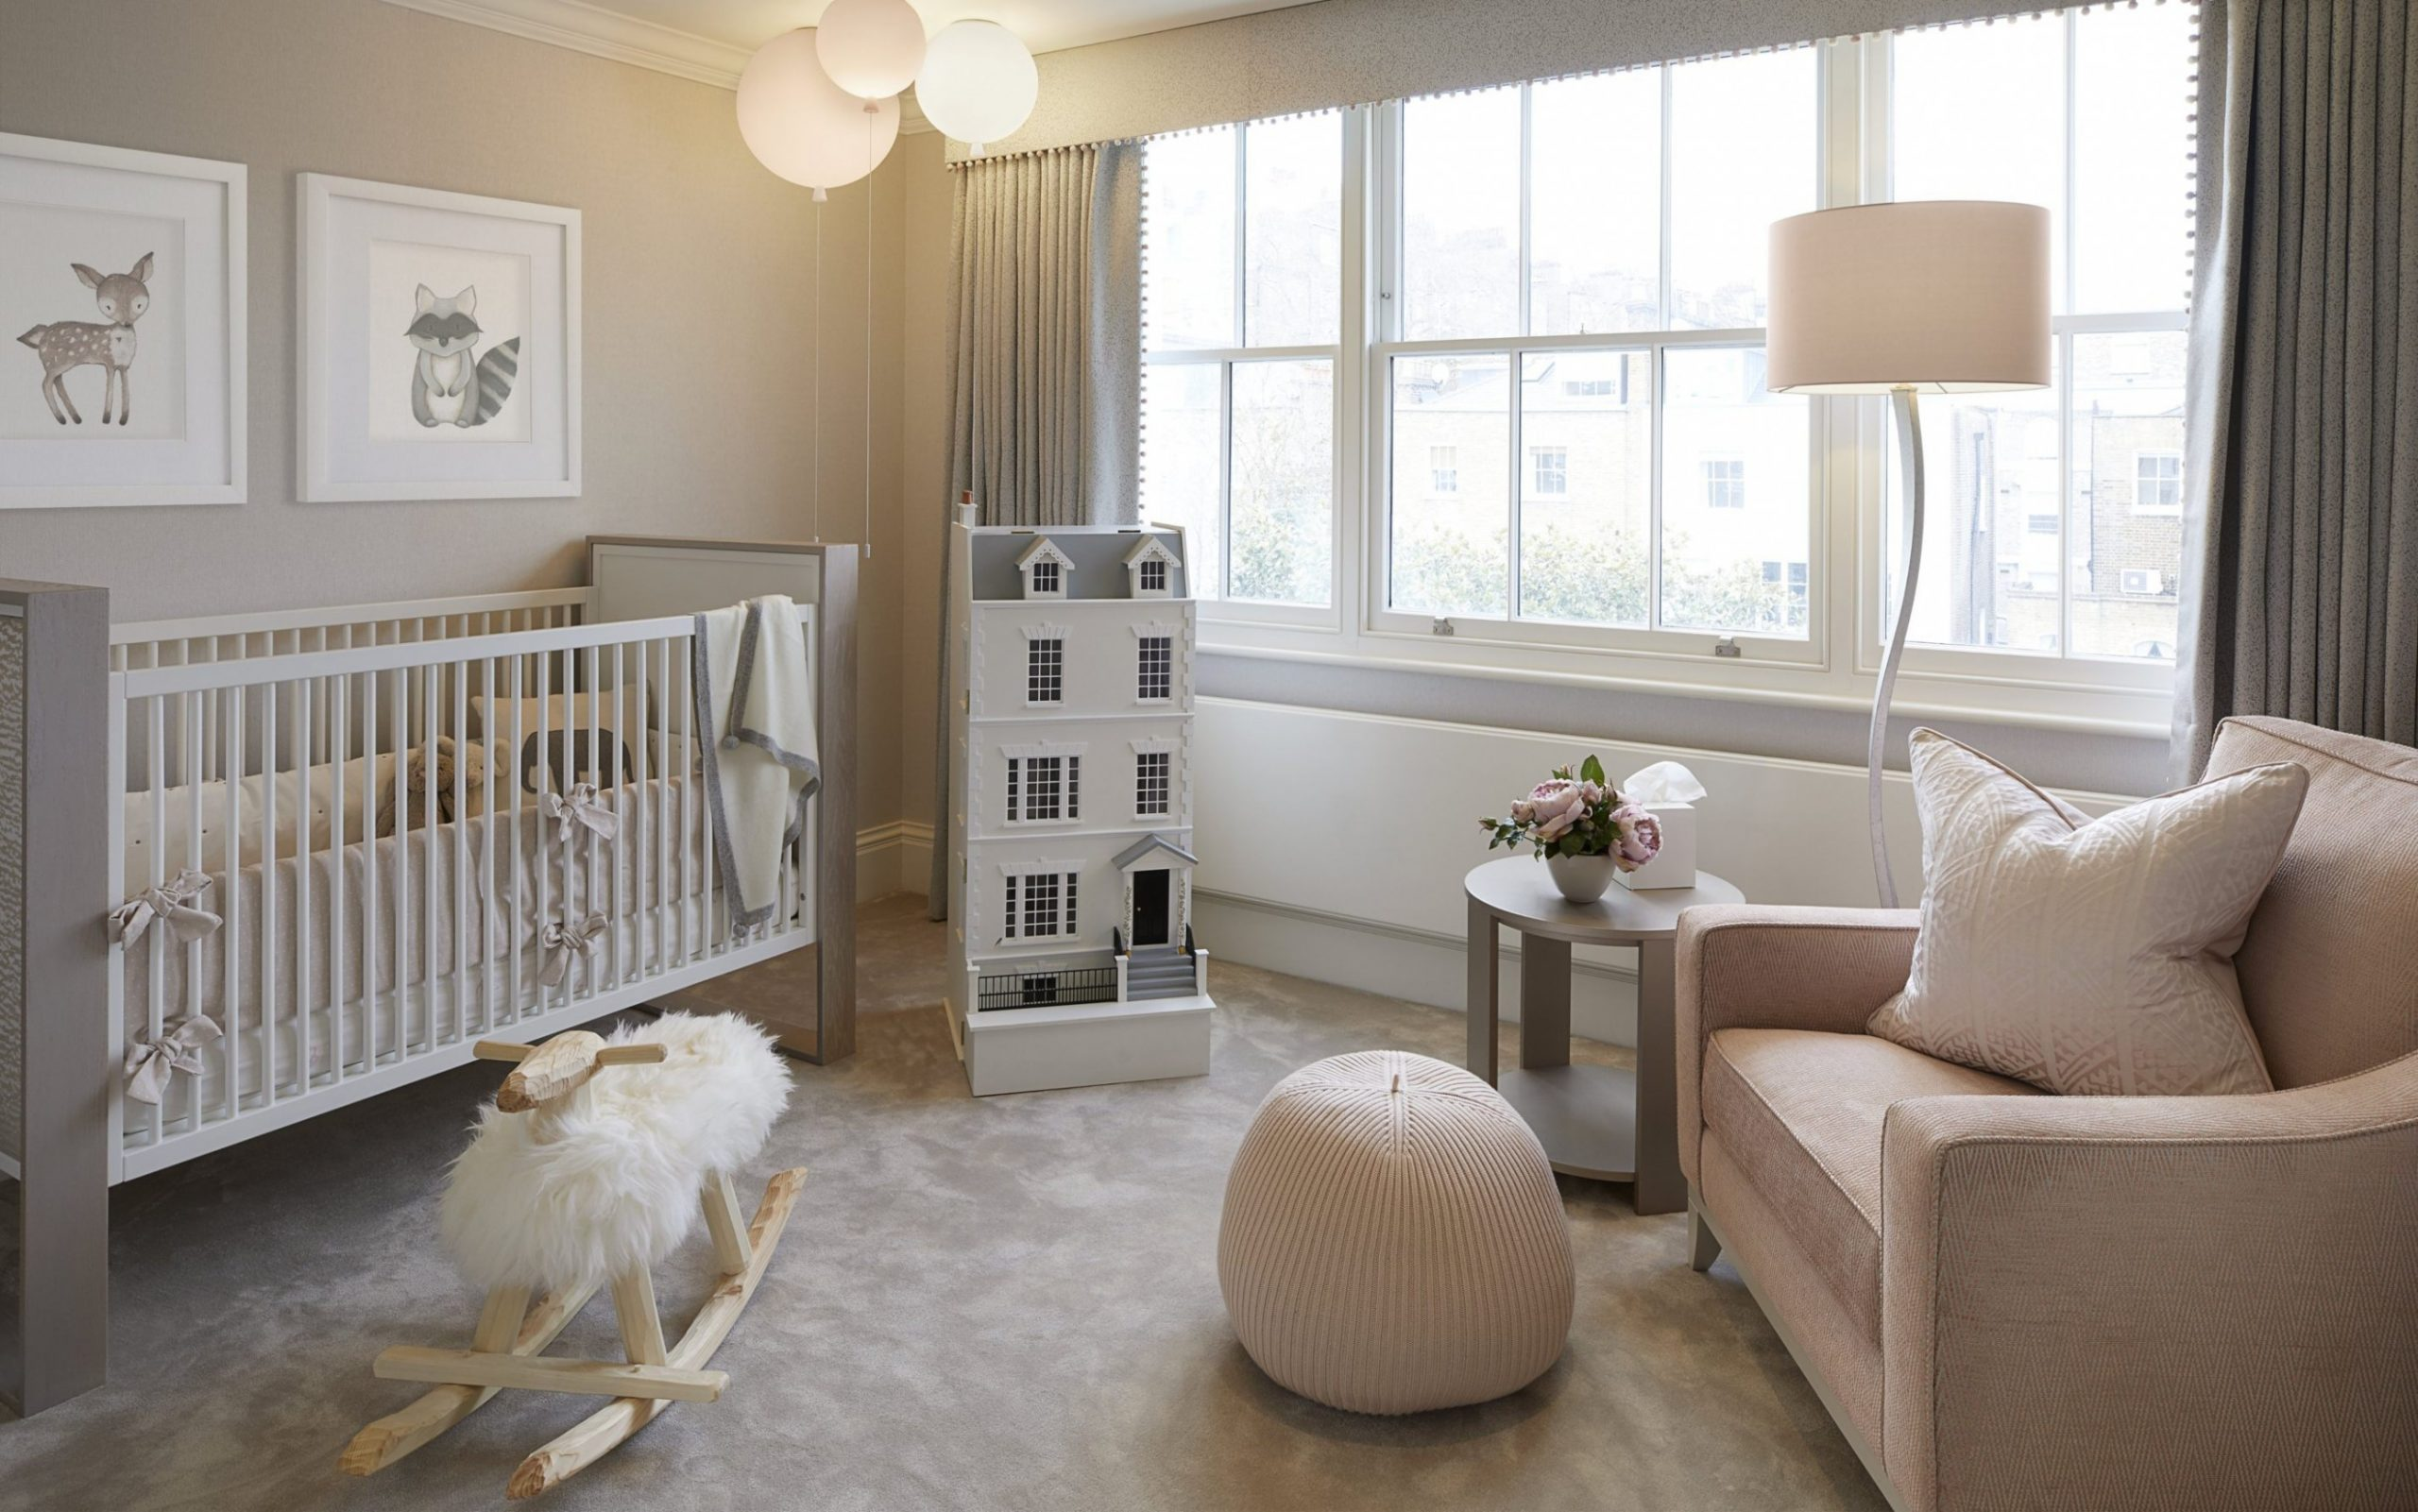 Baby Room Ideas  How To Decorate Your Nursery  LuxDeco